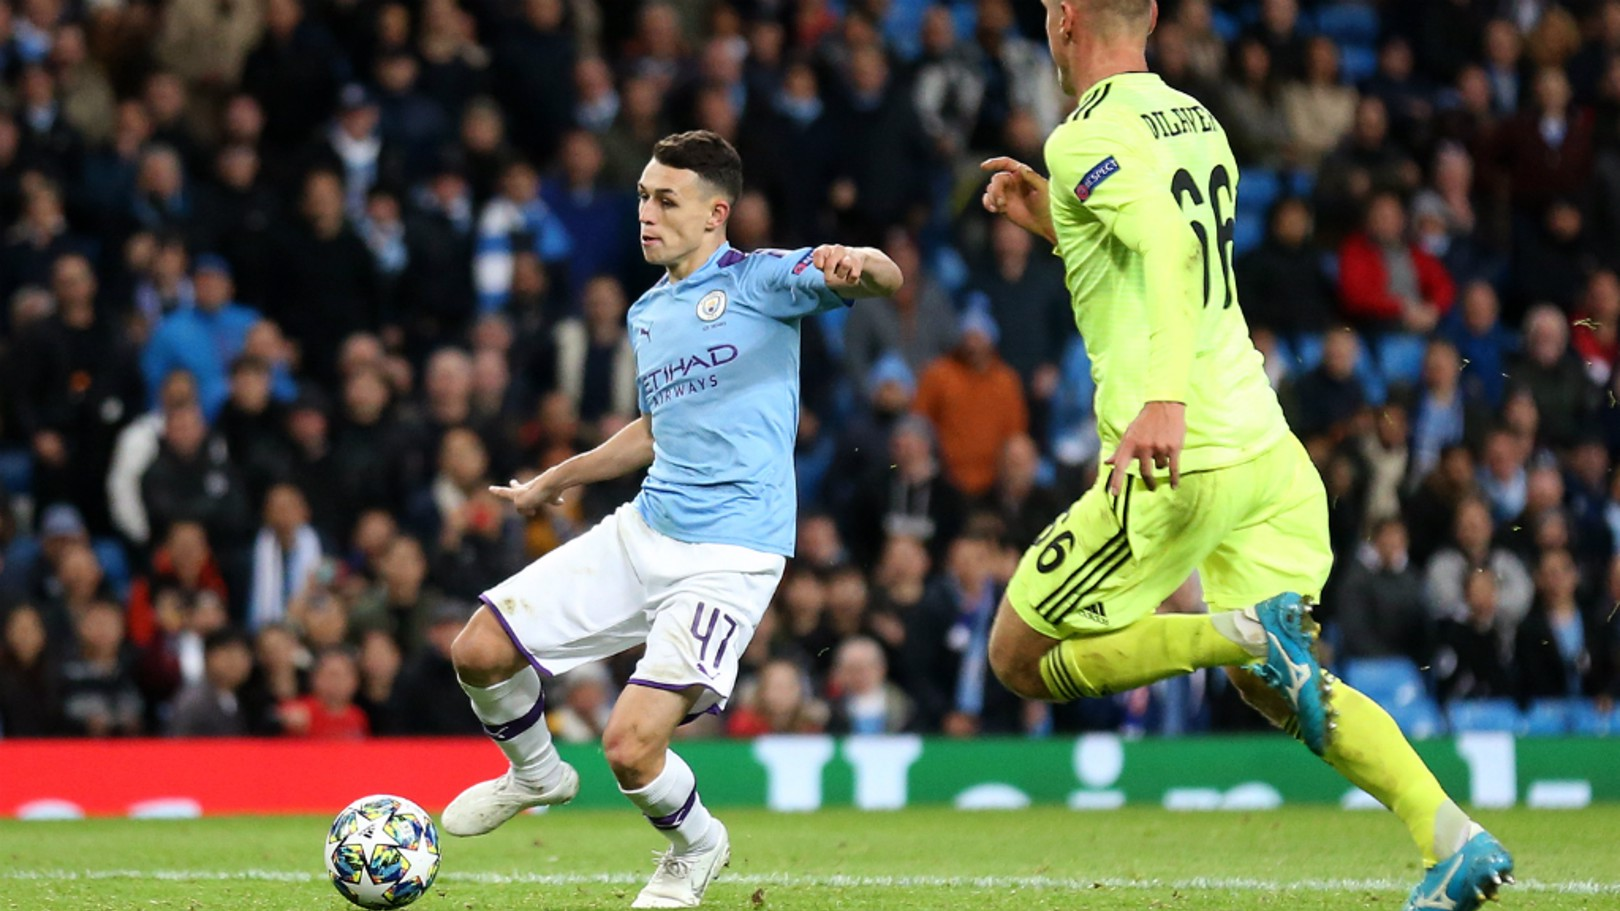 PERFECT ENDING: Substitute Phil Foden sealed City's victory just before the final whistle